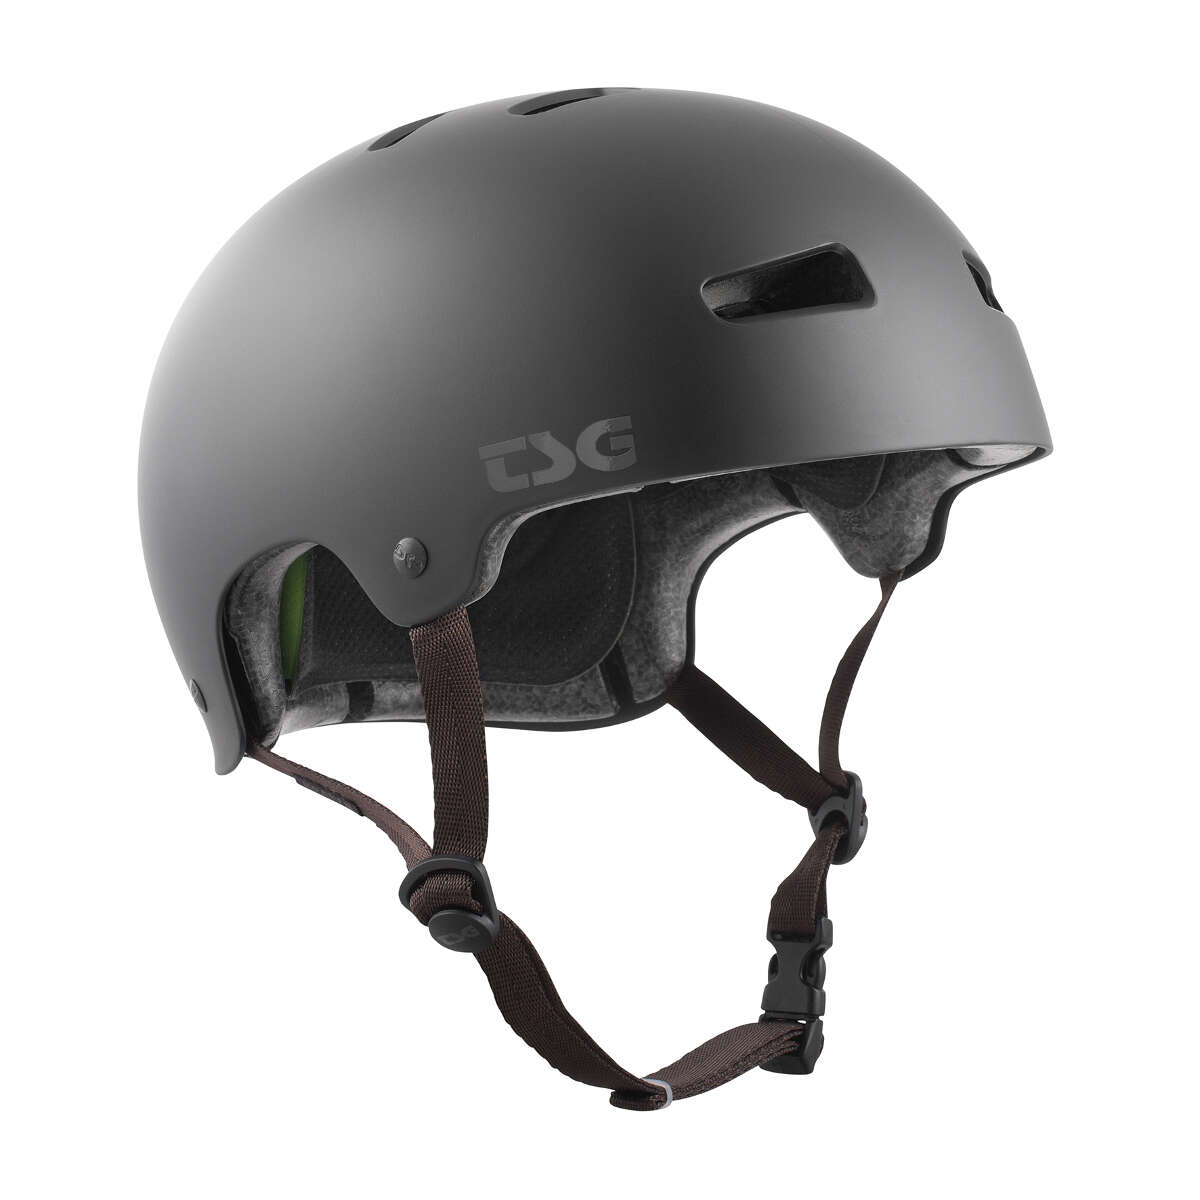 TSG Bmx//Dirt Casque Kraken Solid Color-Satin Black